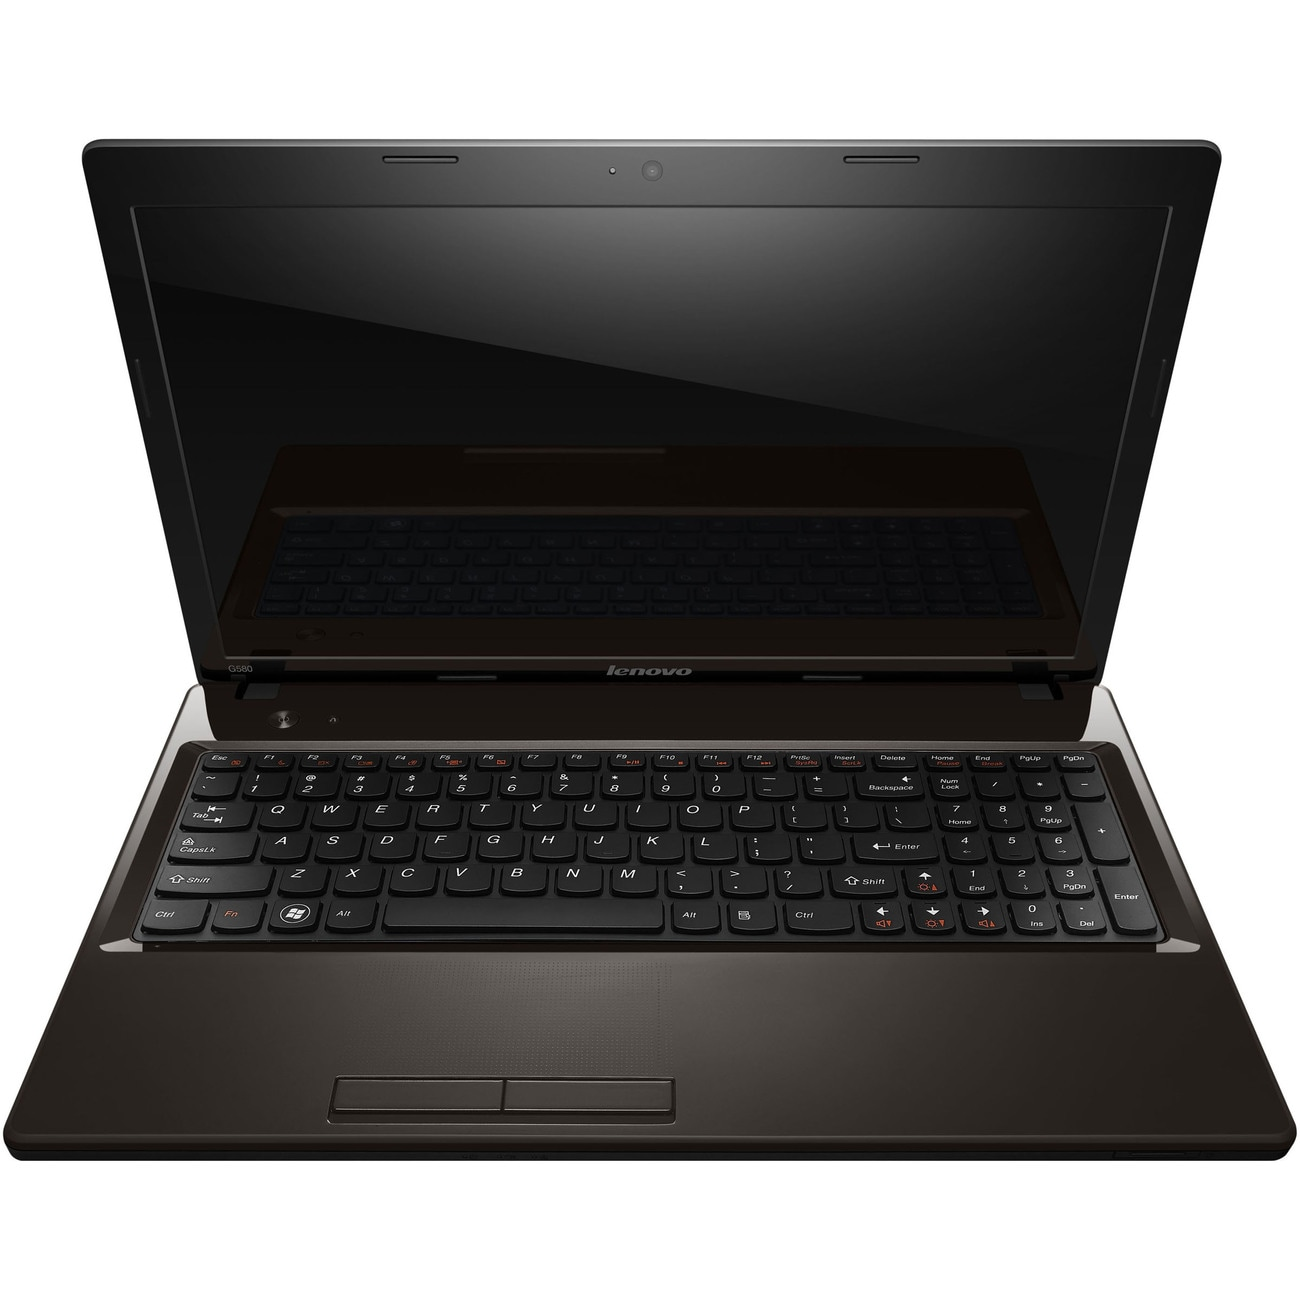 "Lenovo Essential G580 15.6"" Notebook - Intel - Core i5 i5-3210M 2.5GH"